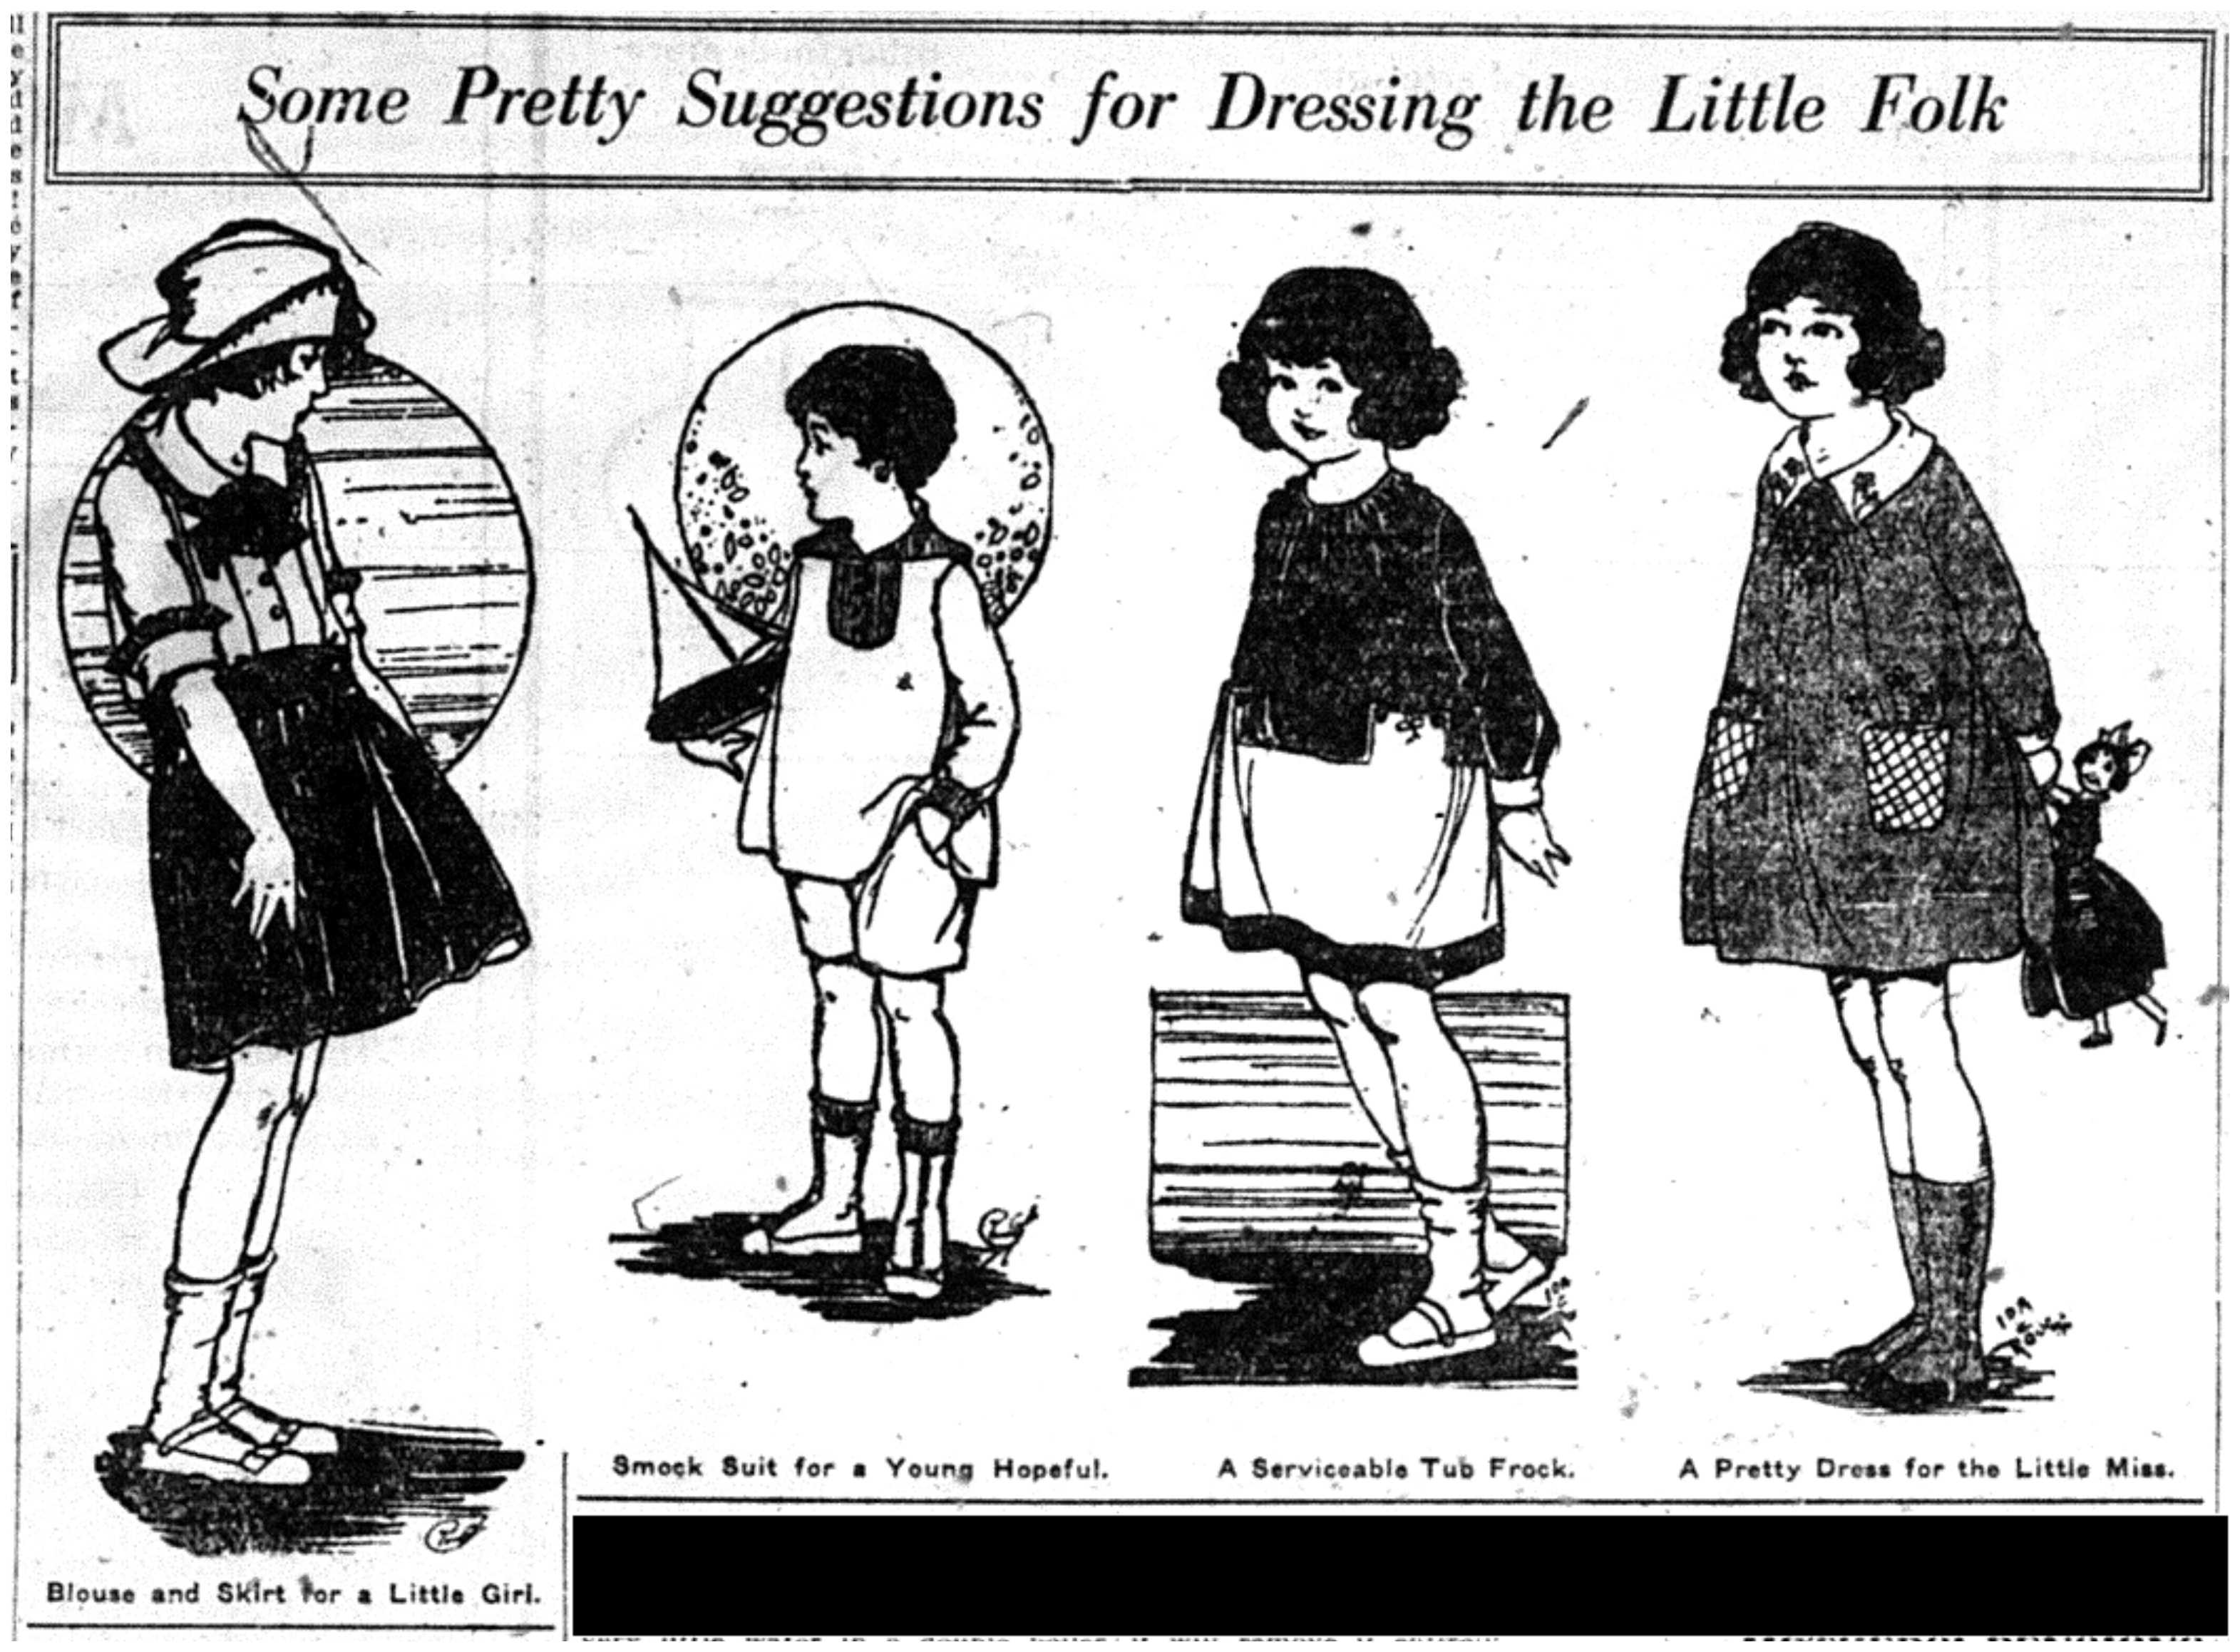 """Some Pretty Suggestions for Dressing the Little Folk"""